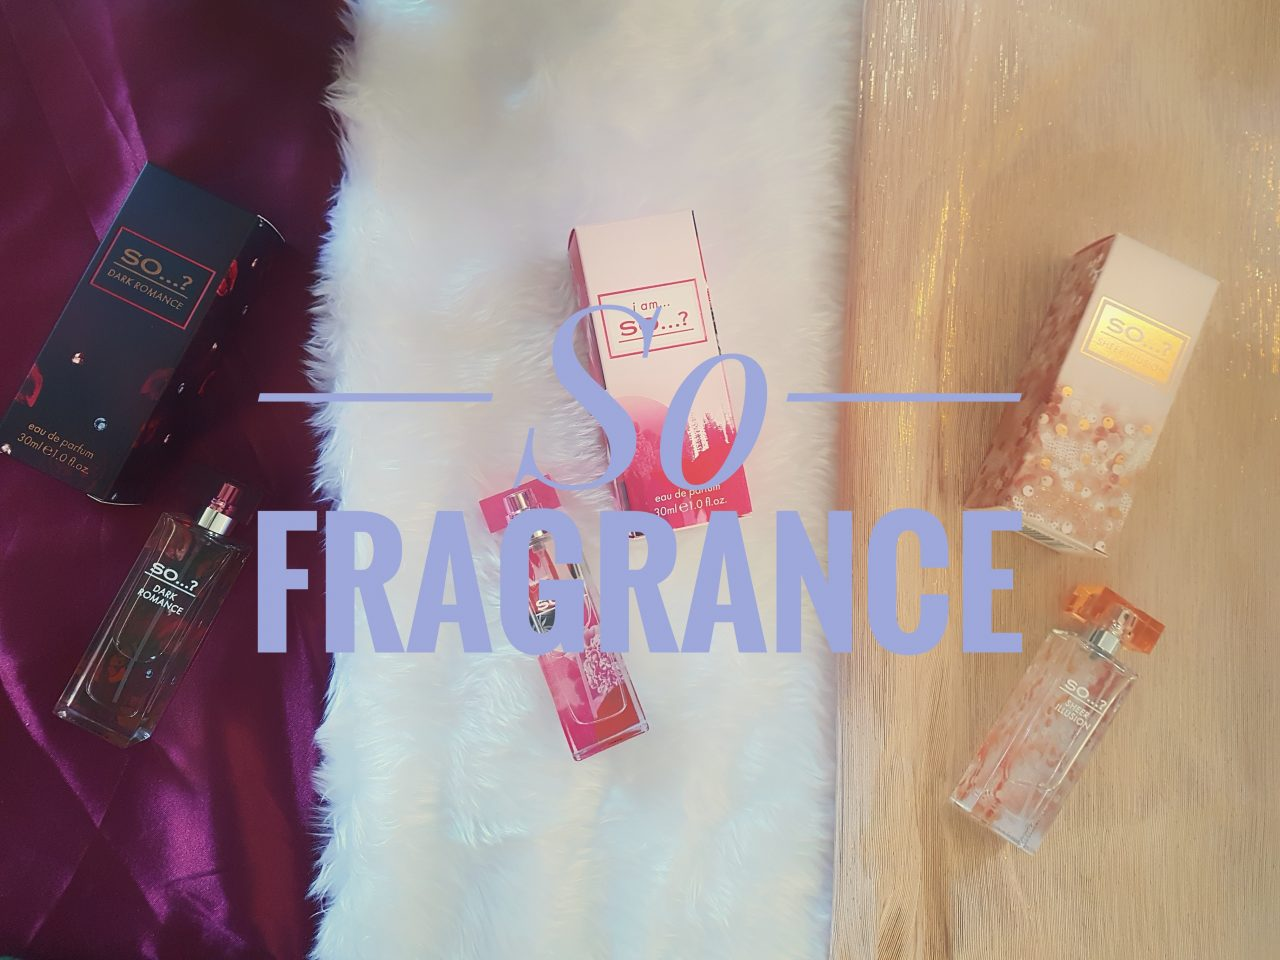 So Fragrance – Take a look at the new range